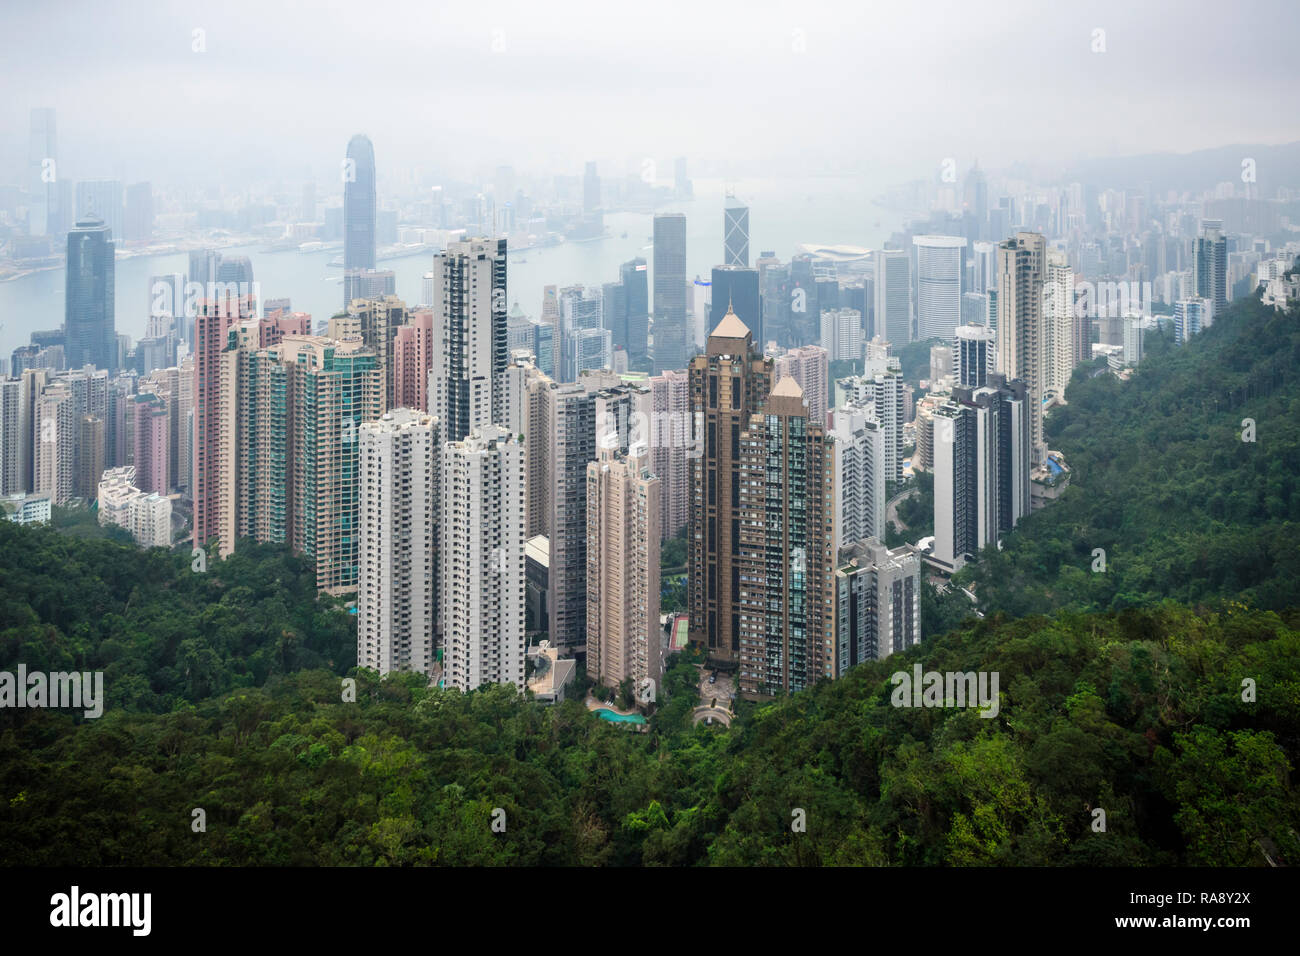 Restricted view of Hong Kong due to haze from air pollution - Stock Image